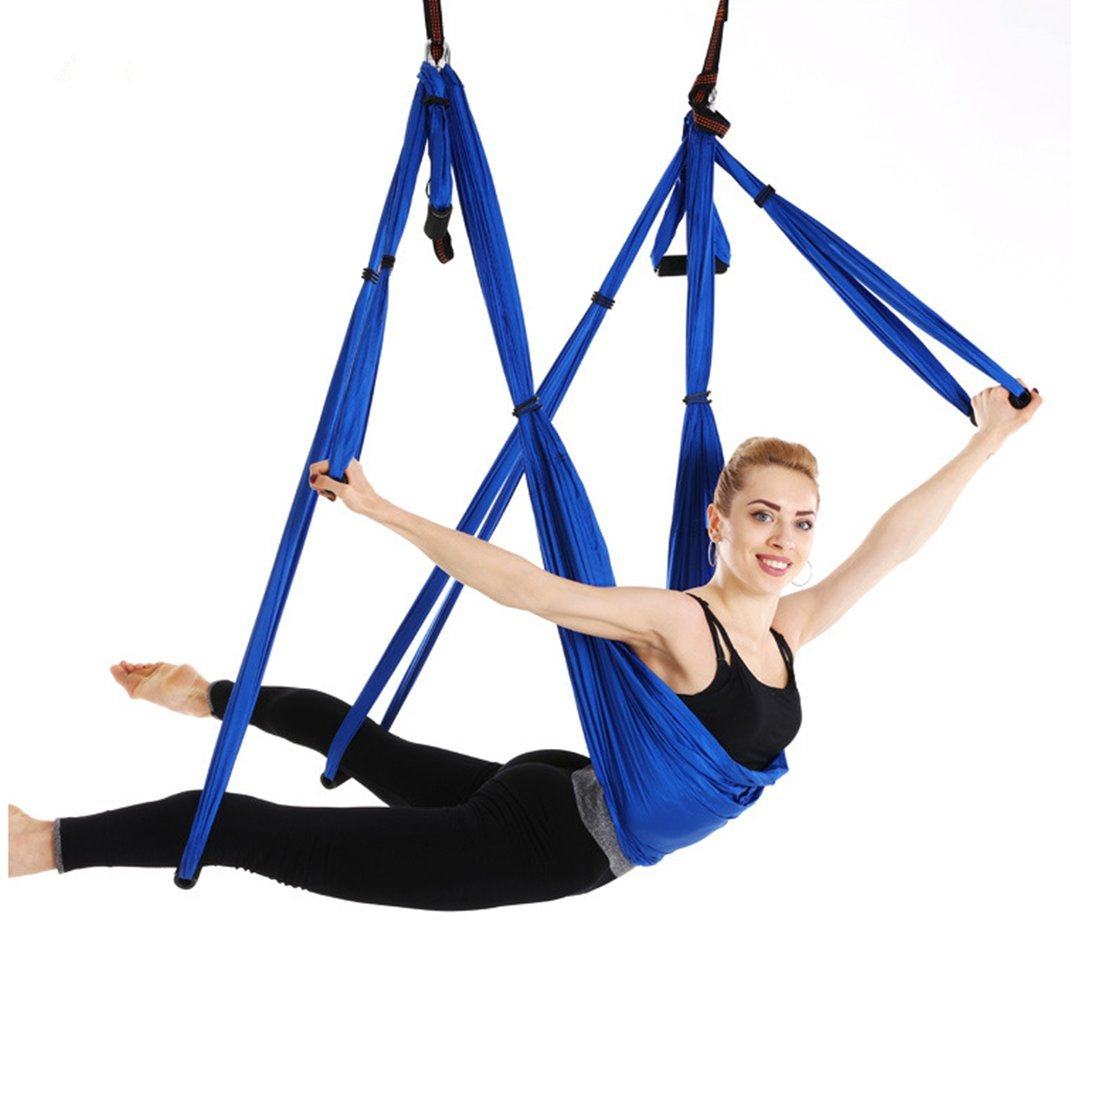 Ranbo Aerial Yoga Trapeze Set Ultra Strong Antigravity Yoga Swing/Hammock Holds Up to 400 Pounds for Inversion Exercises Pilate Fitness Flexibility Core Strength Weight Loss (Dark Blue)